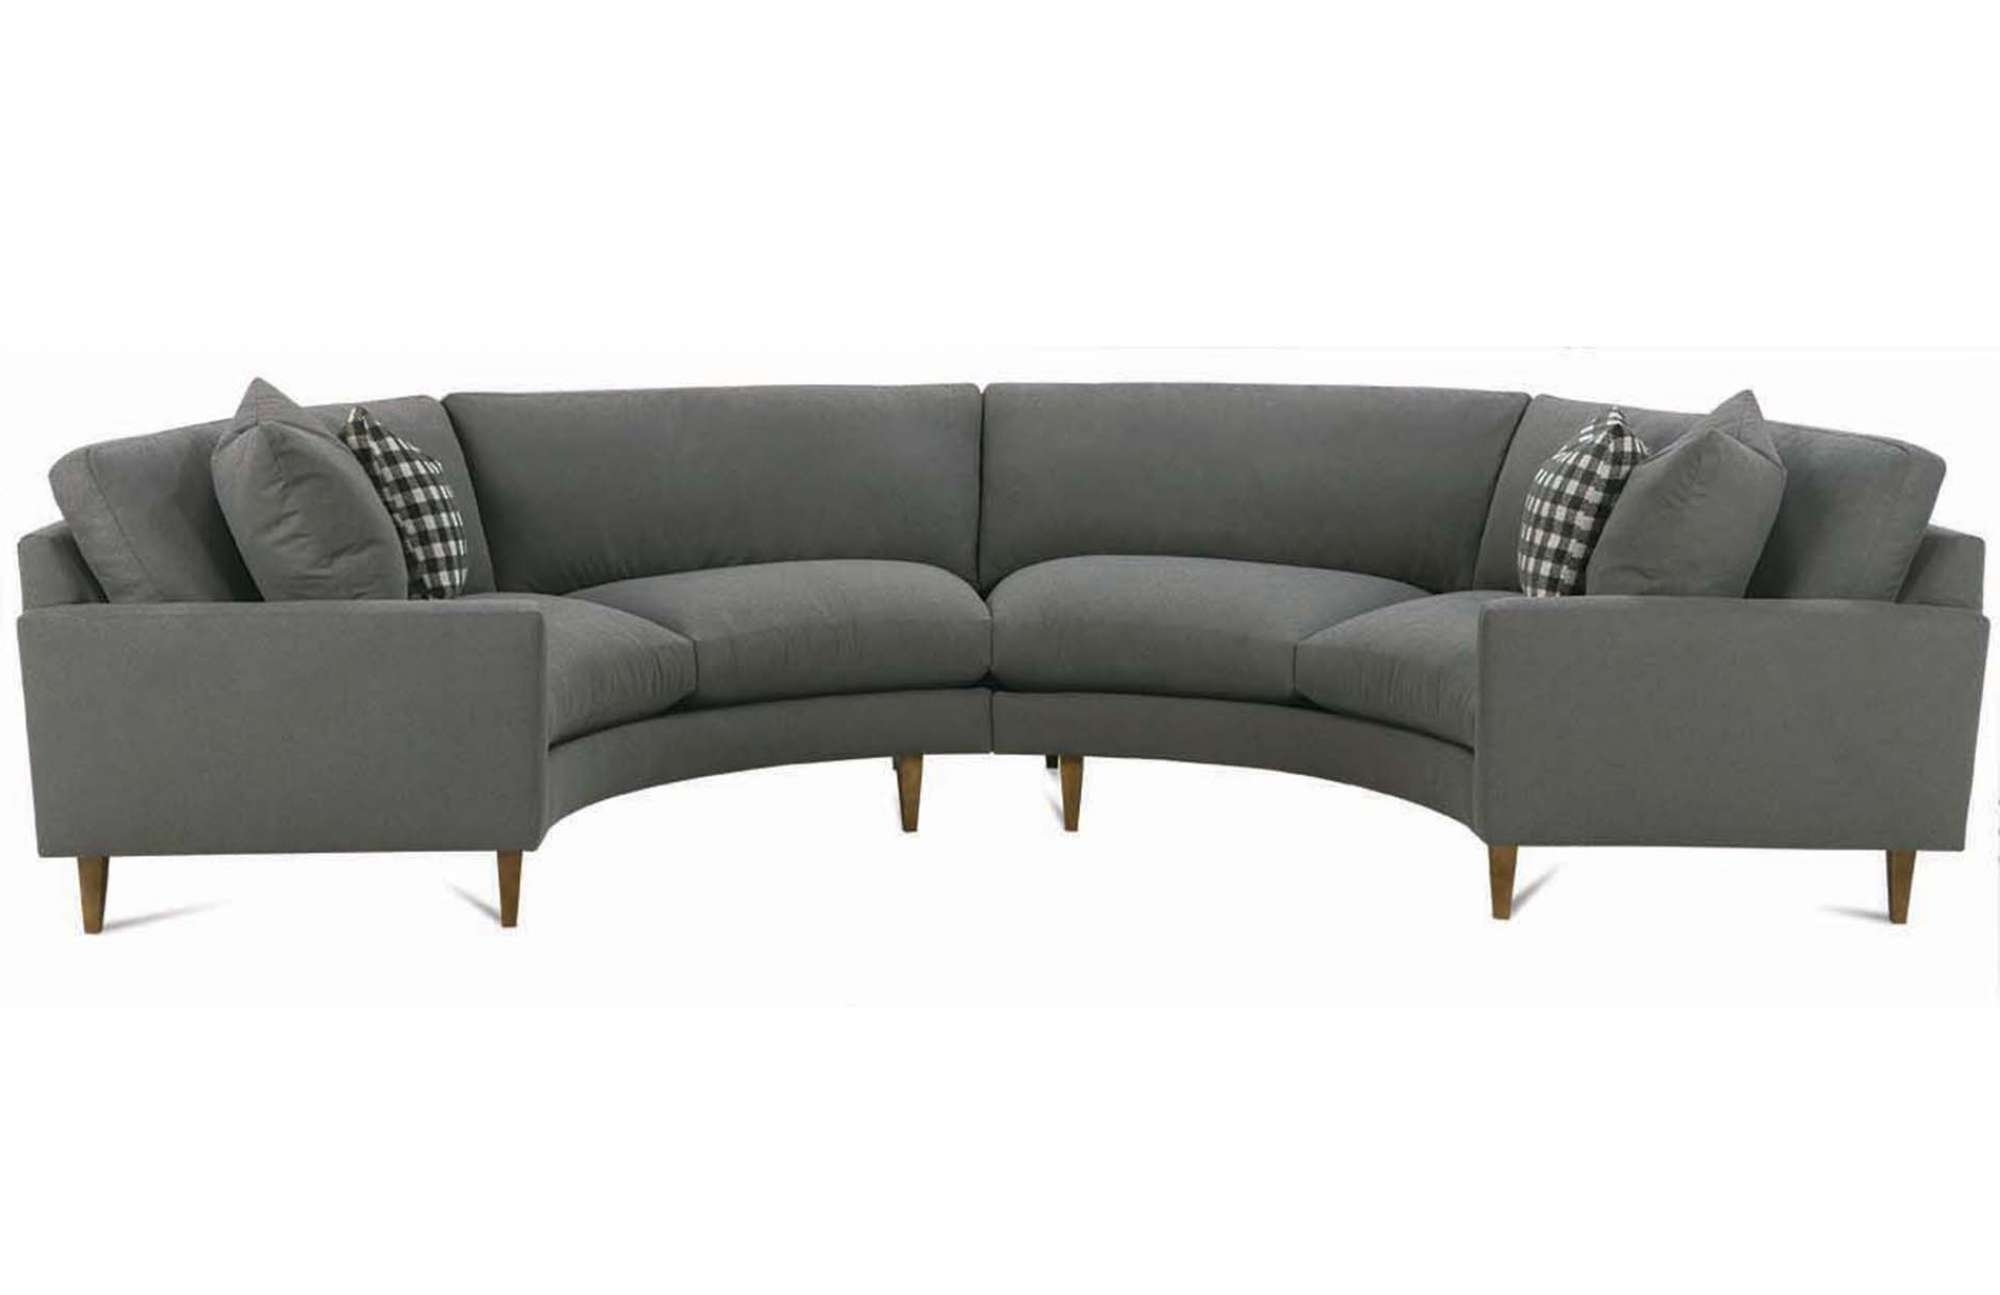 Sectional Sofas At Brampton Throughout Current Oslo Sectionalrobin Bruce (View 17 of 20)